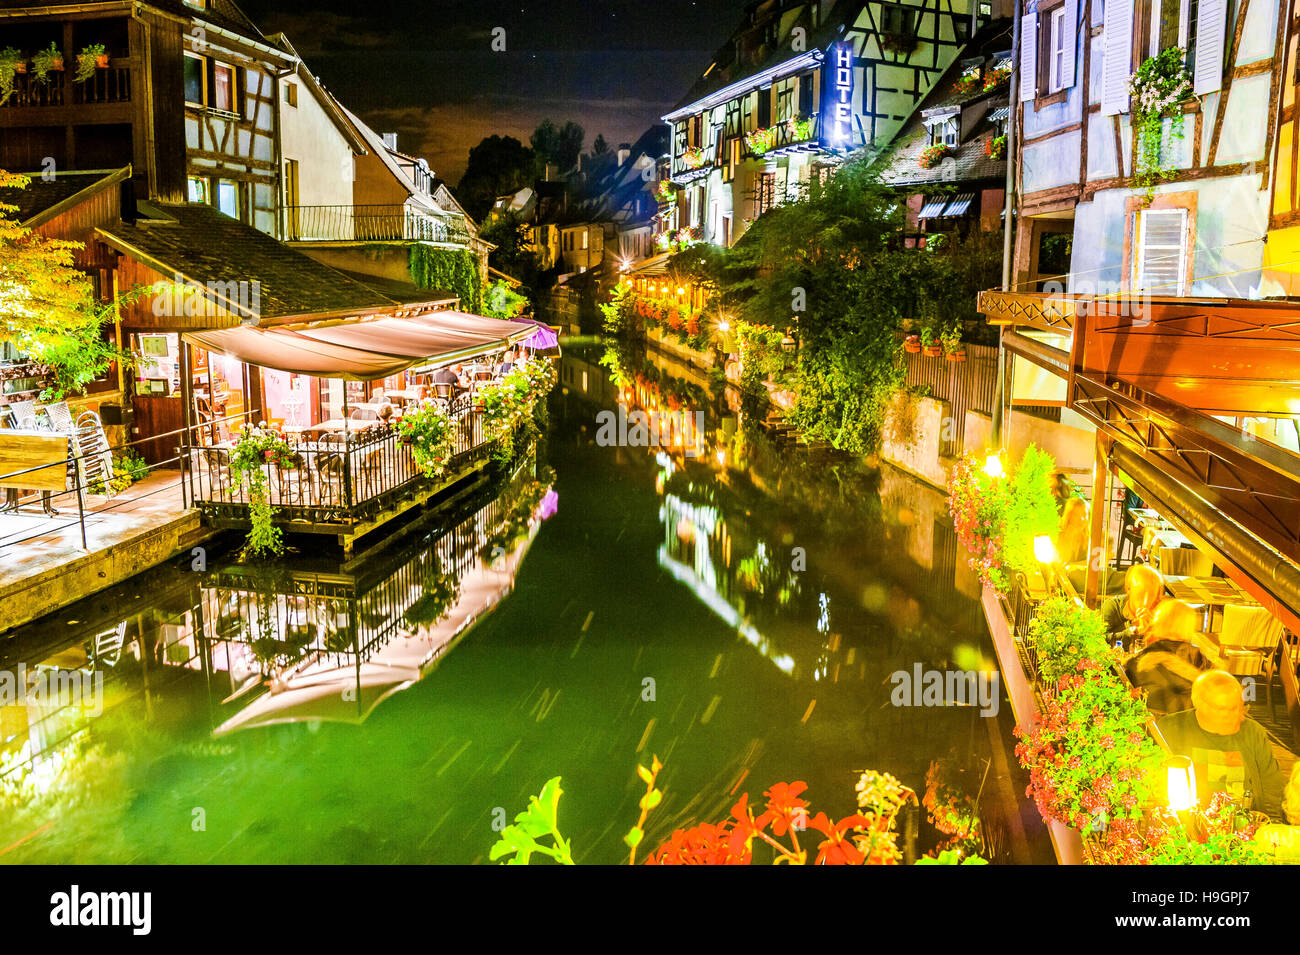 Colmar, scenic picturesque town at night with canal and reflection in the water, part of old town called small Venice, - Stock Image